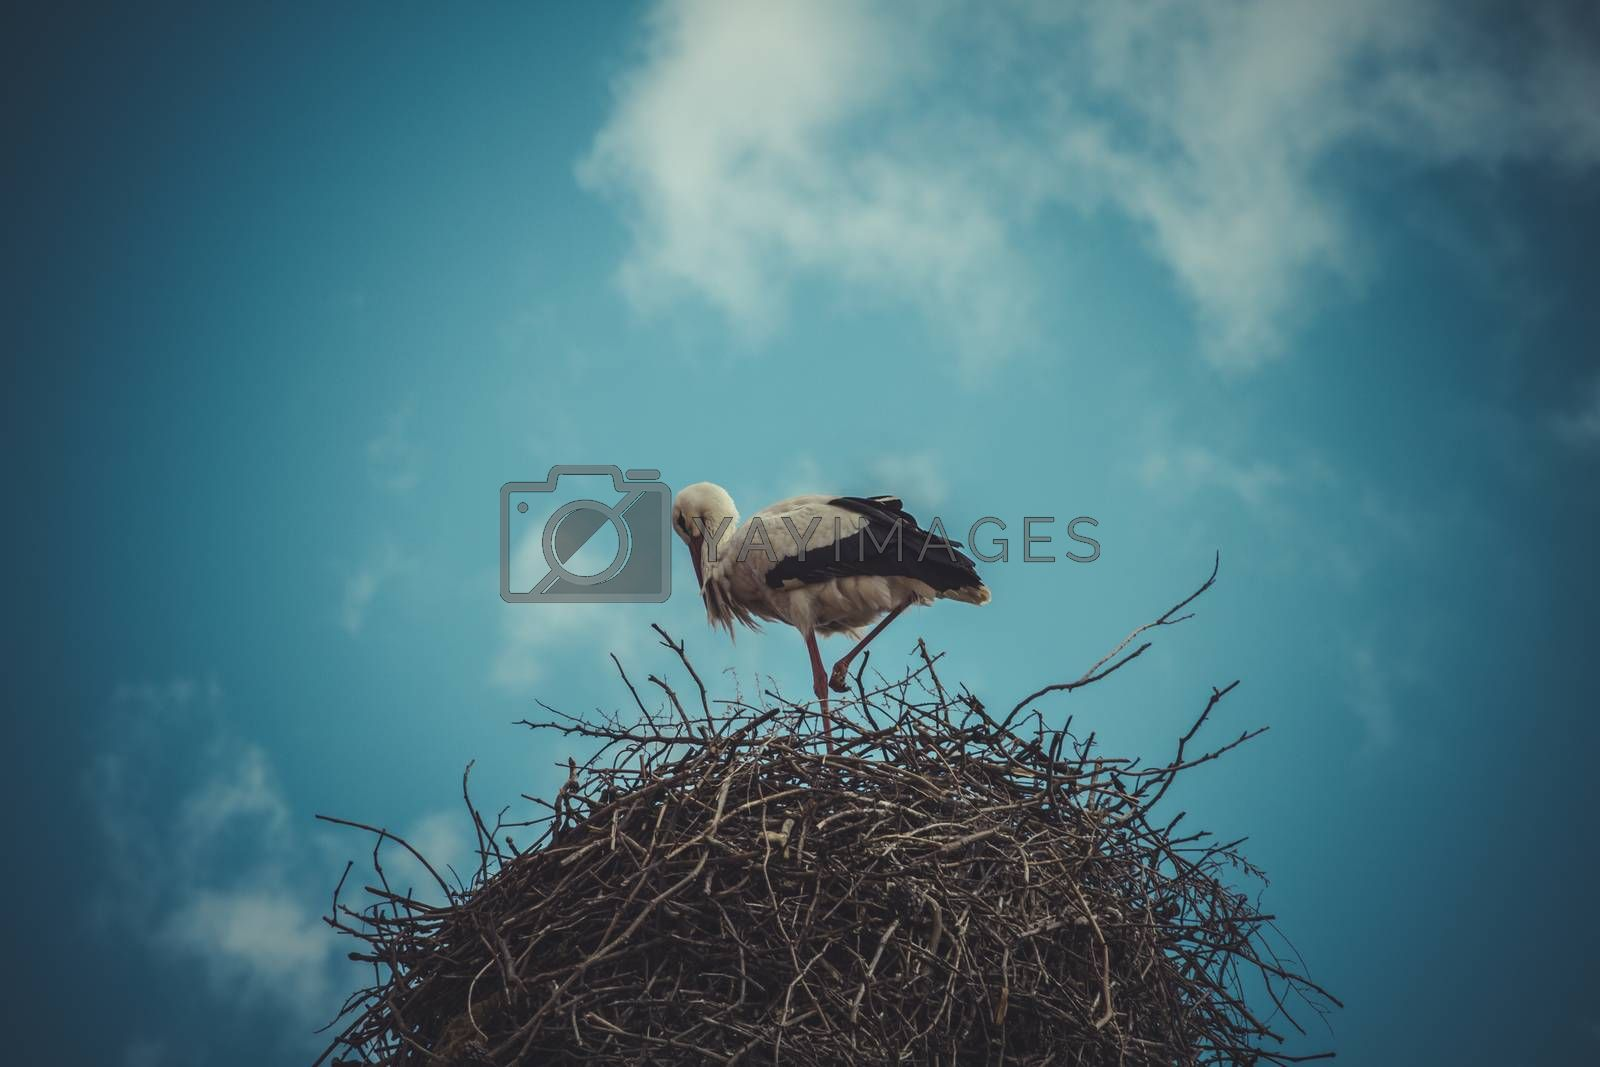 Migratory, Stork nest made ������of tree branches over blue sky in dramatic